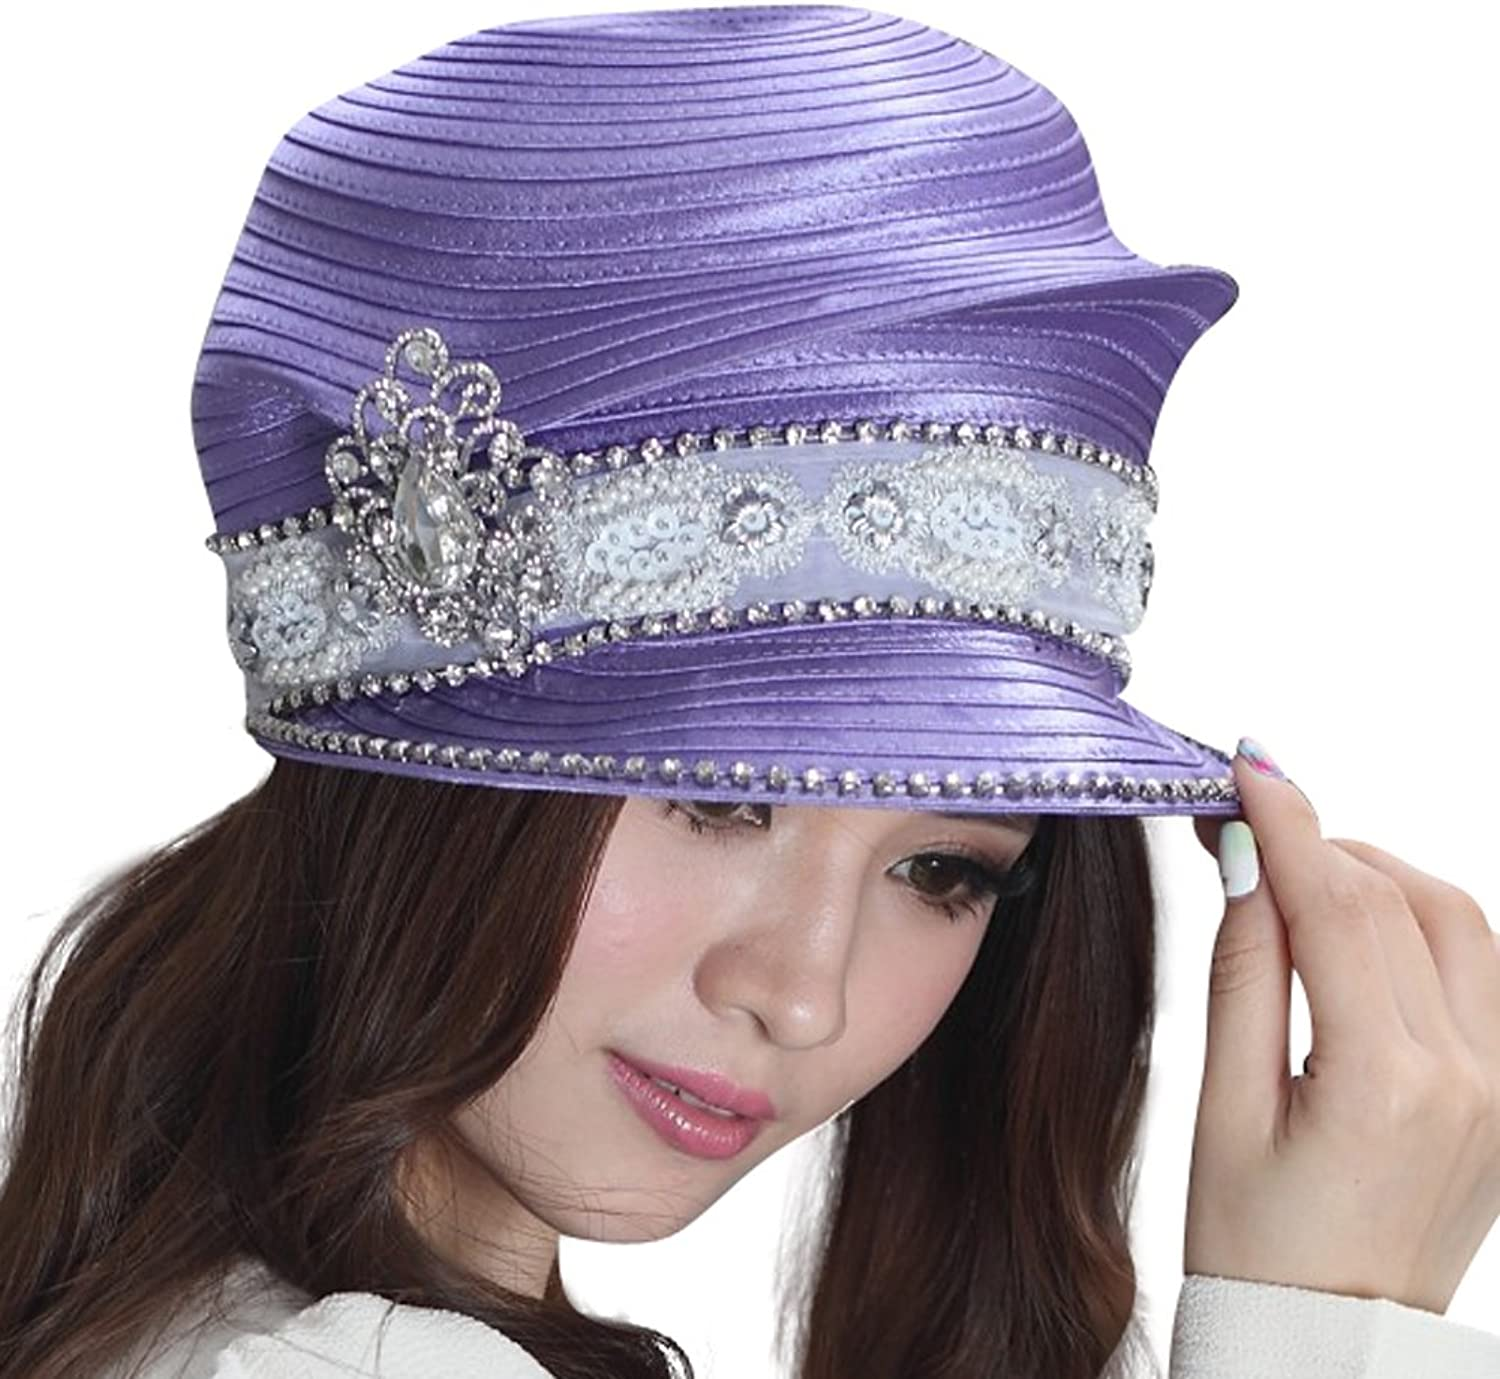 June's Young Elegant Church Hat for Women Satin Hat Fabric Twist Hat Brooch with Flower Decoration (purple)